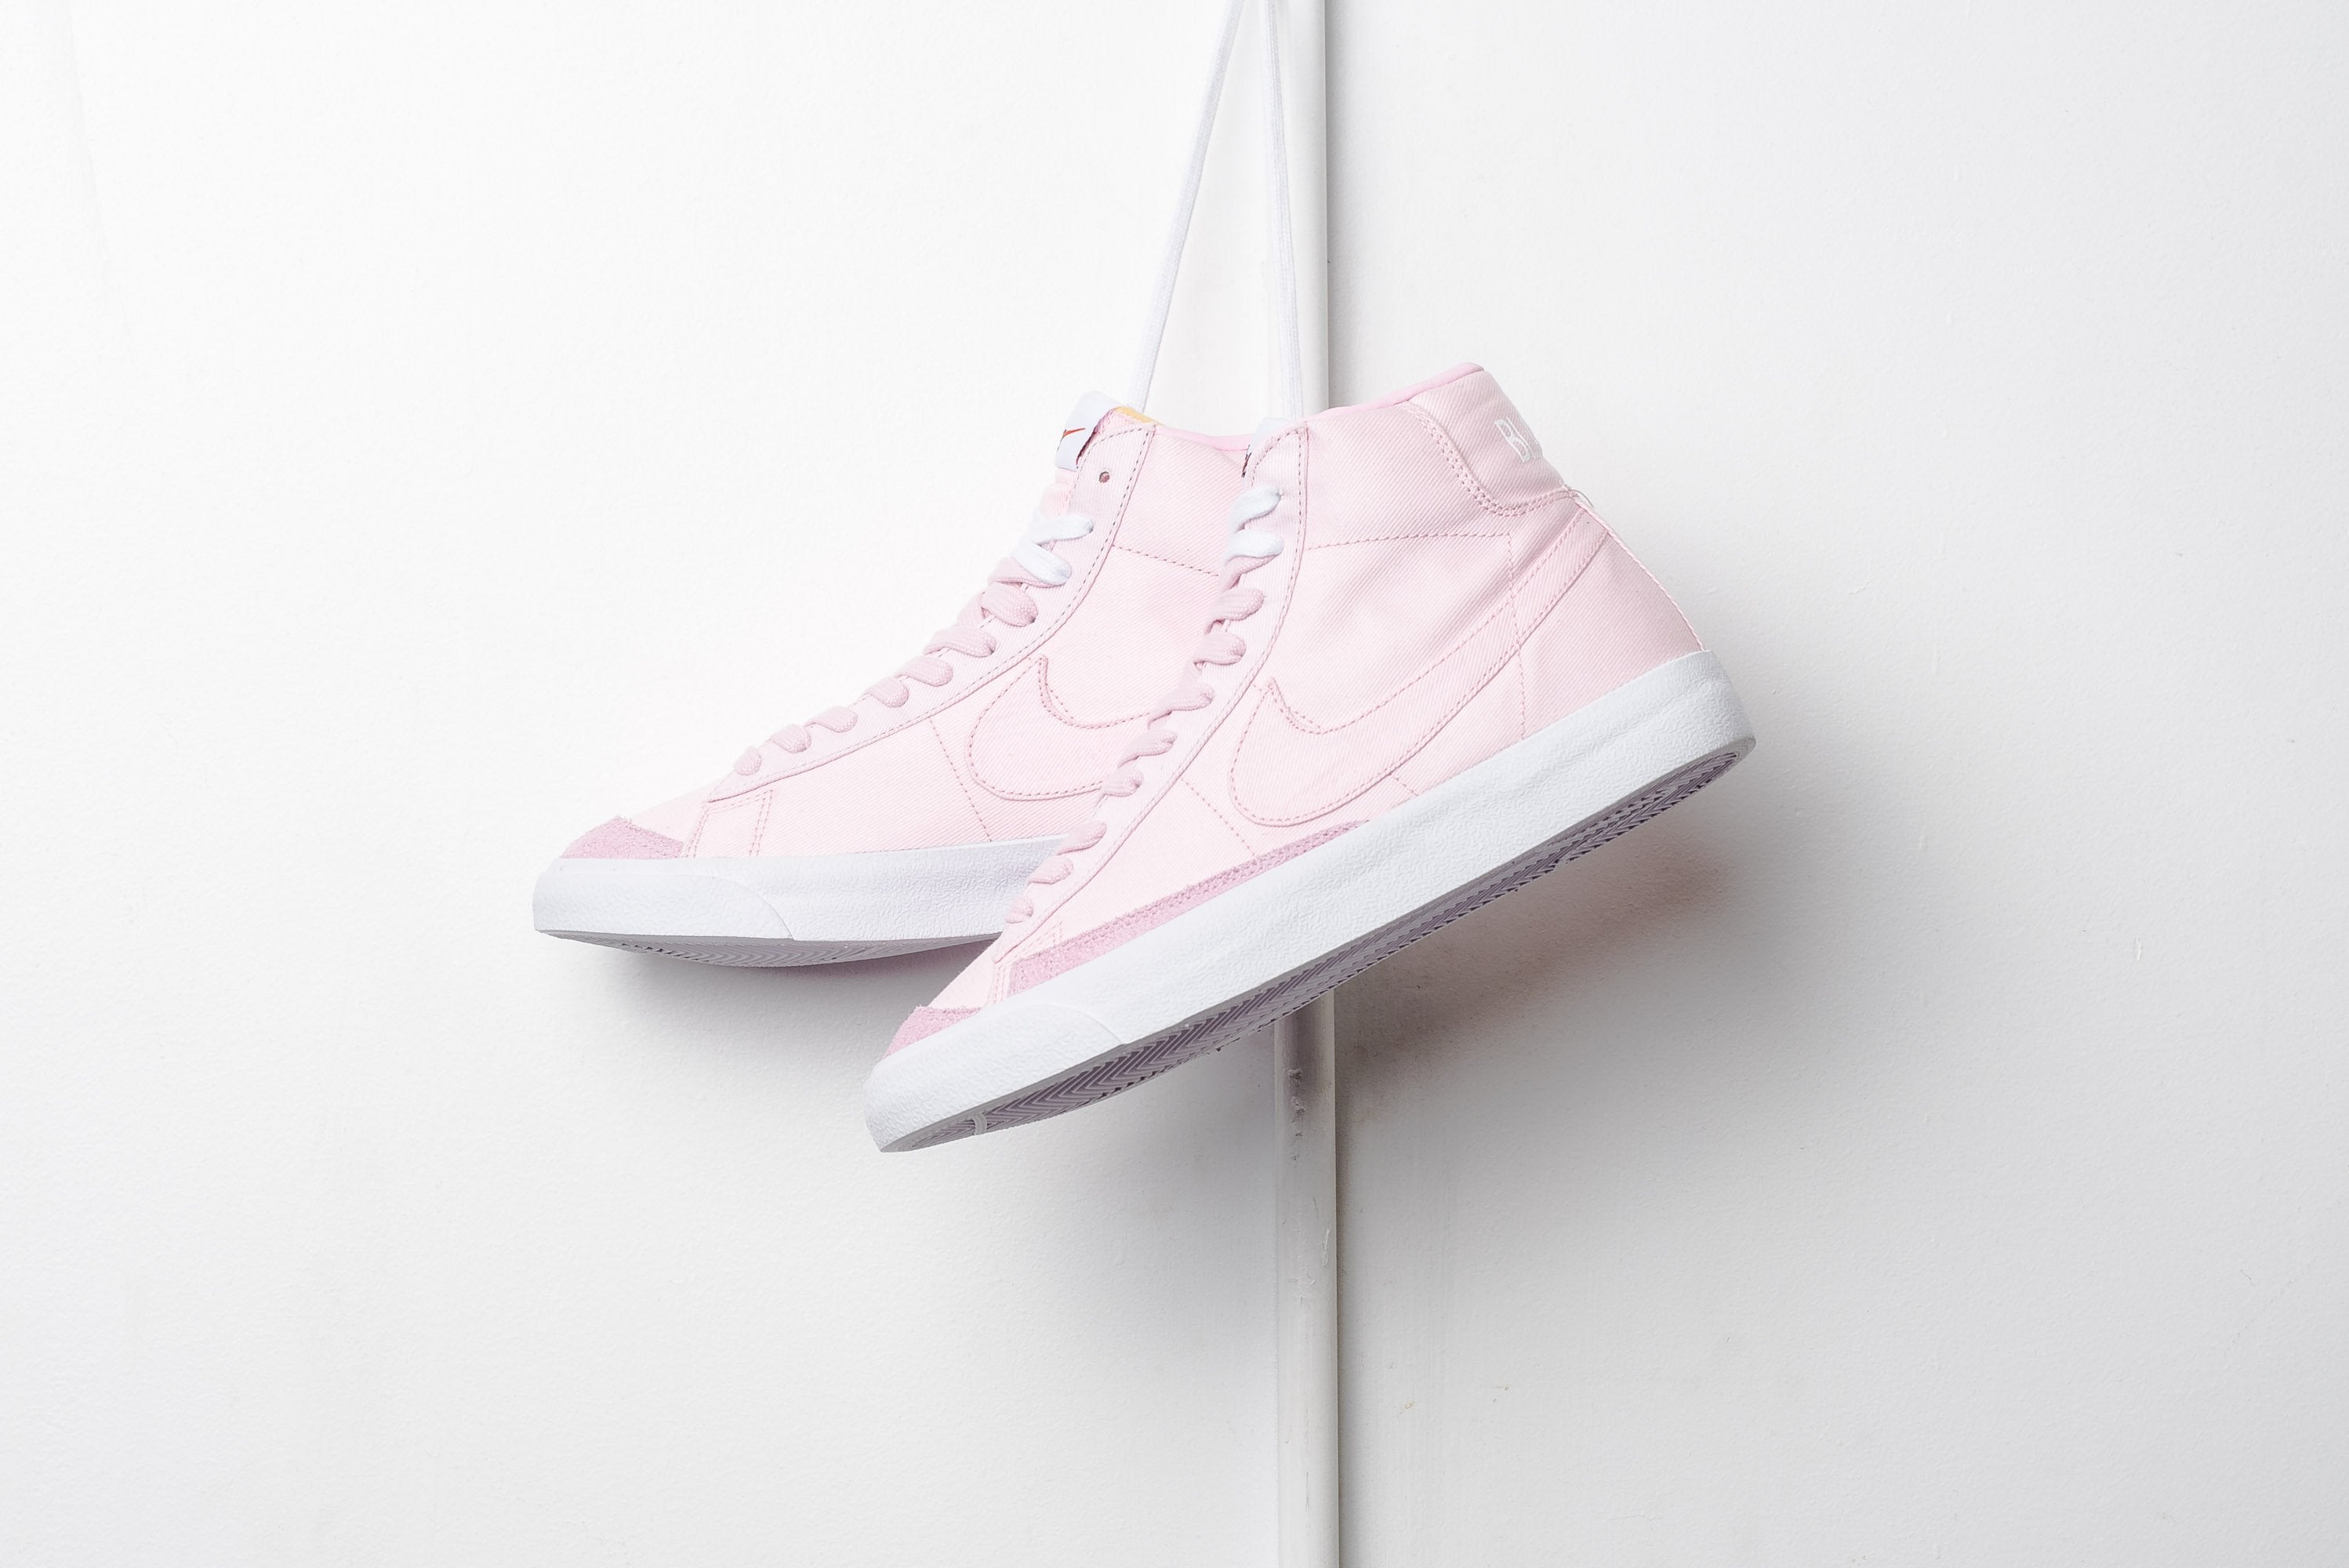 Nike Blazer Mid '77 VNTG WE - Pink Foam/White #CD8238-600-Preorder Item-Navy Selected Shop